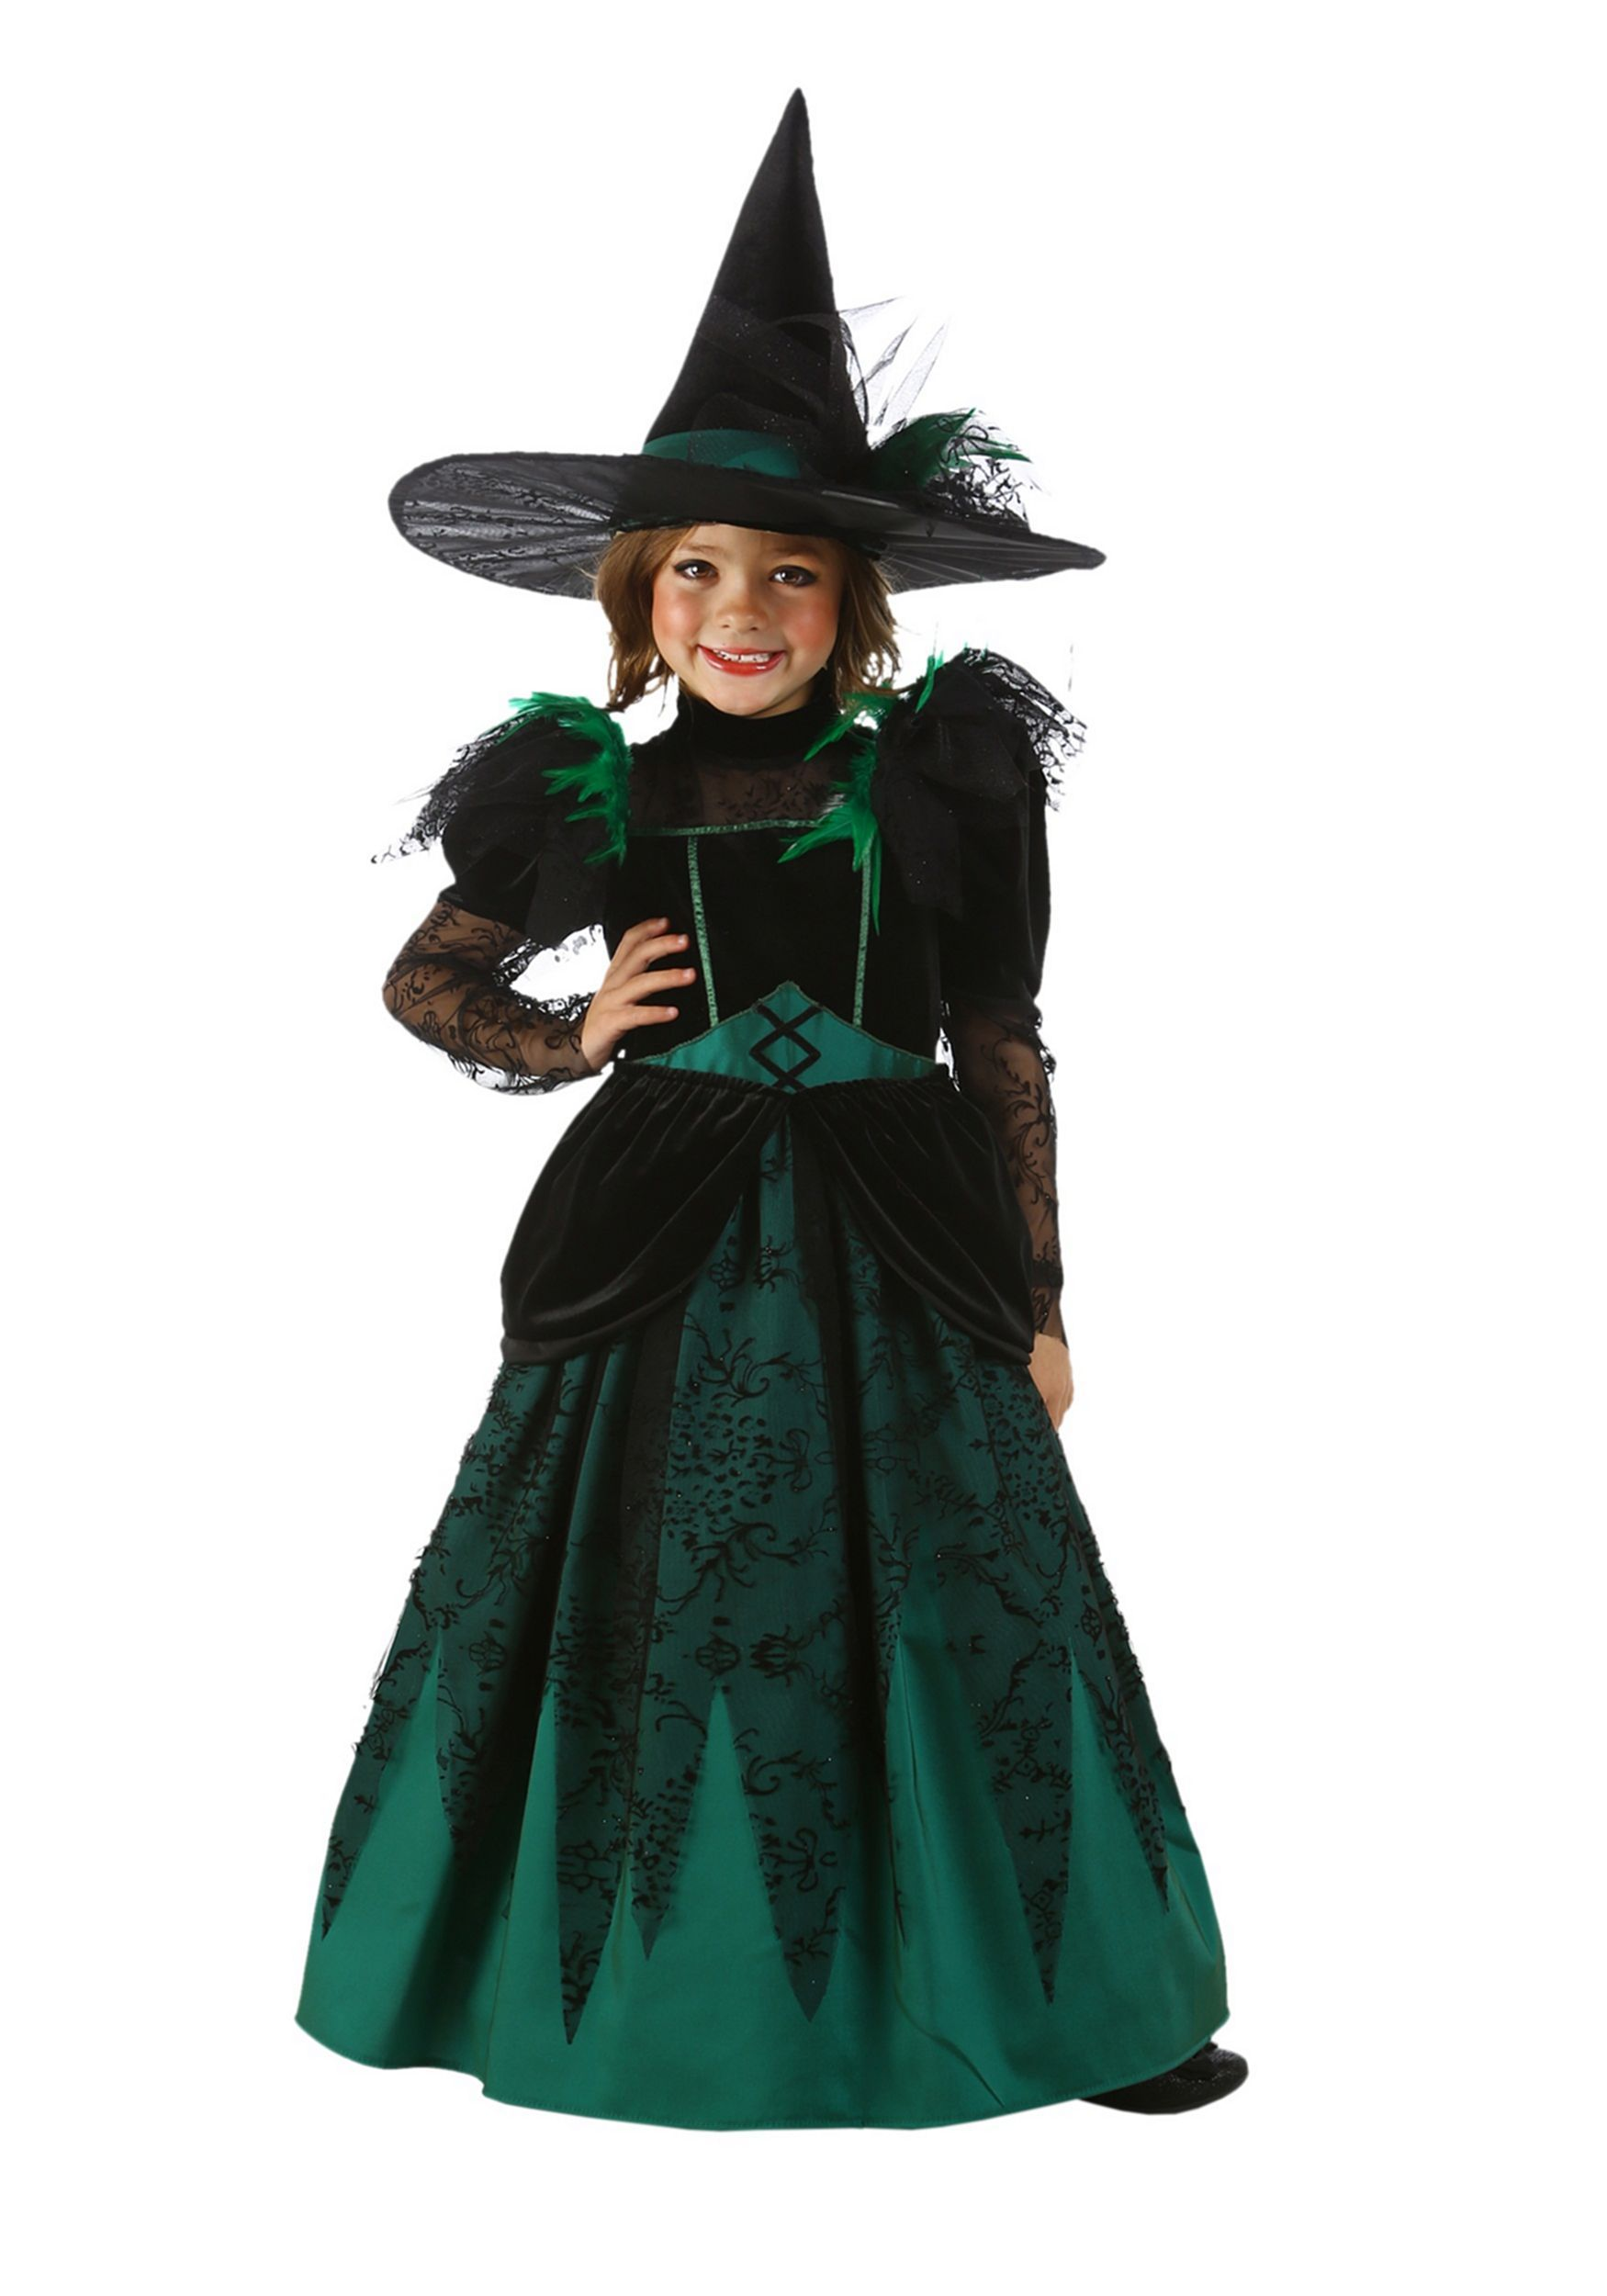 Adorable Most Awesome Witch Costume Ideas For Halloween Party 40+ Best Pictures   sc 1 st  Pinterest & Most Awesome Witch Costume Ideas For Halloween Party: 40+ Best ...